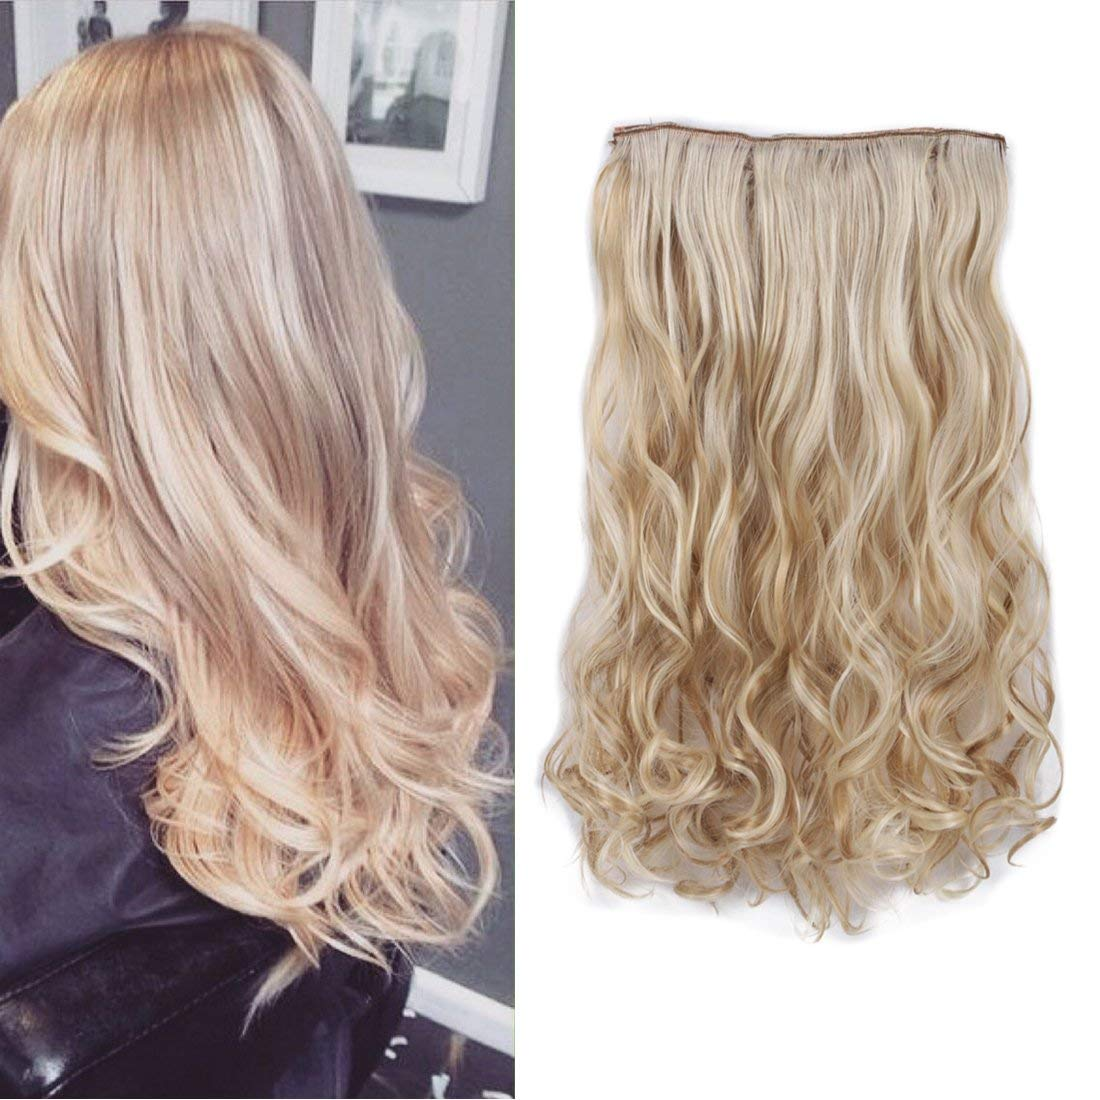 Cheap Long Curly Blonde Hair Extensions Find Long Curly Blonde Hair